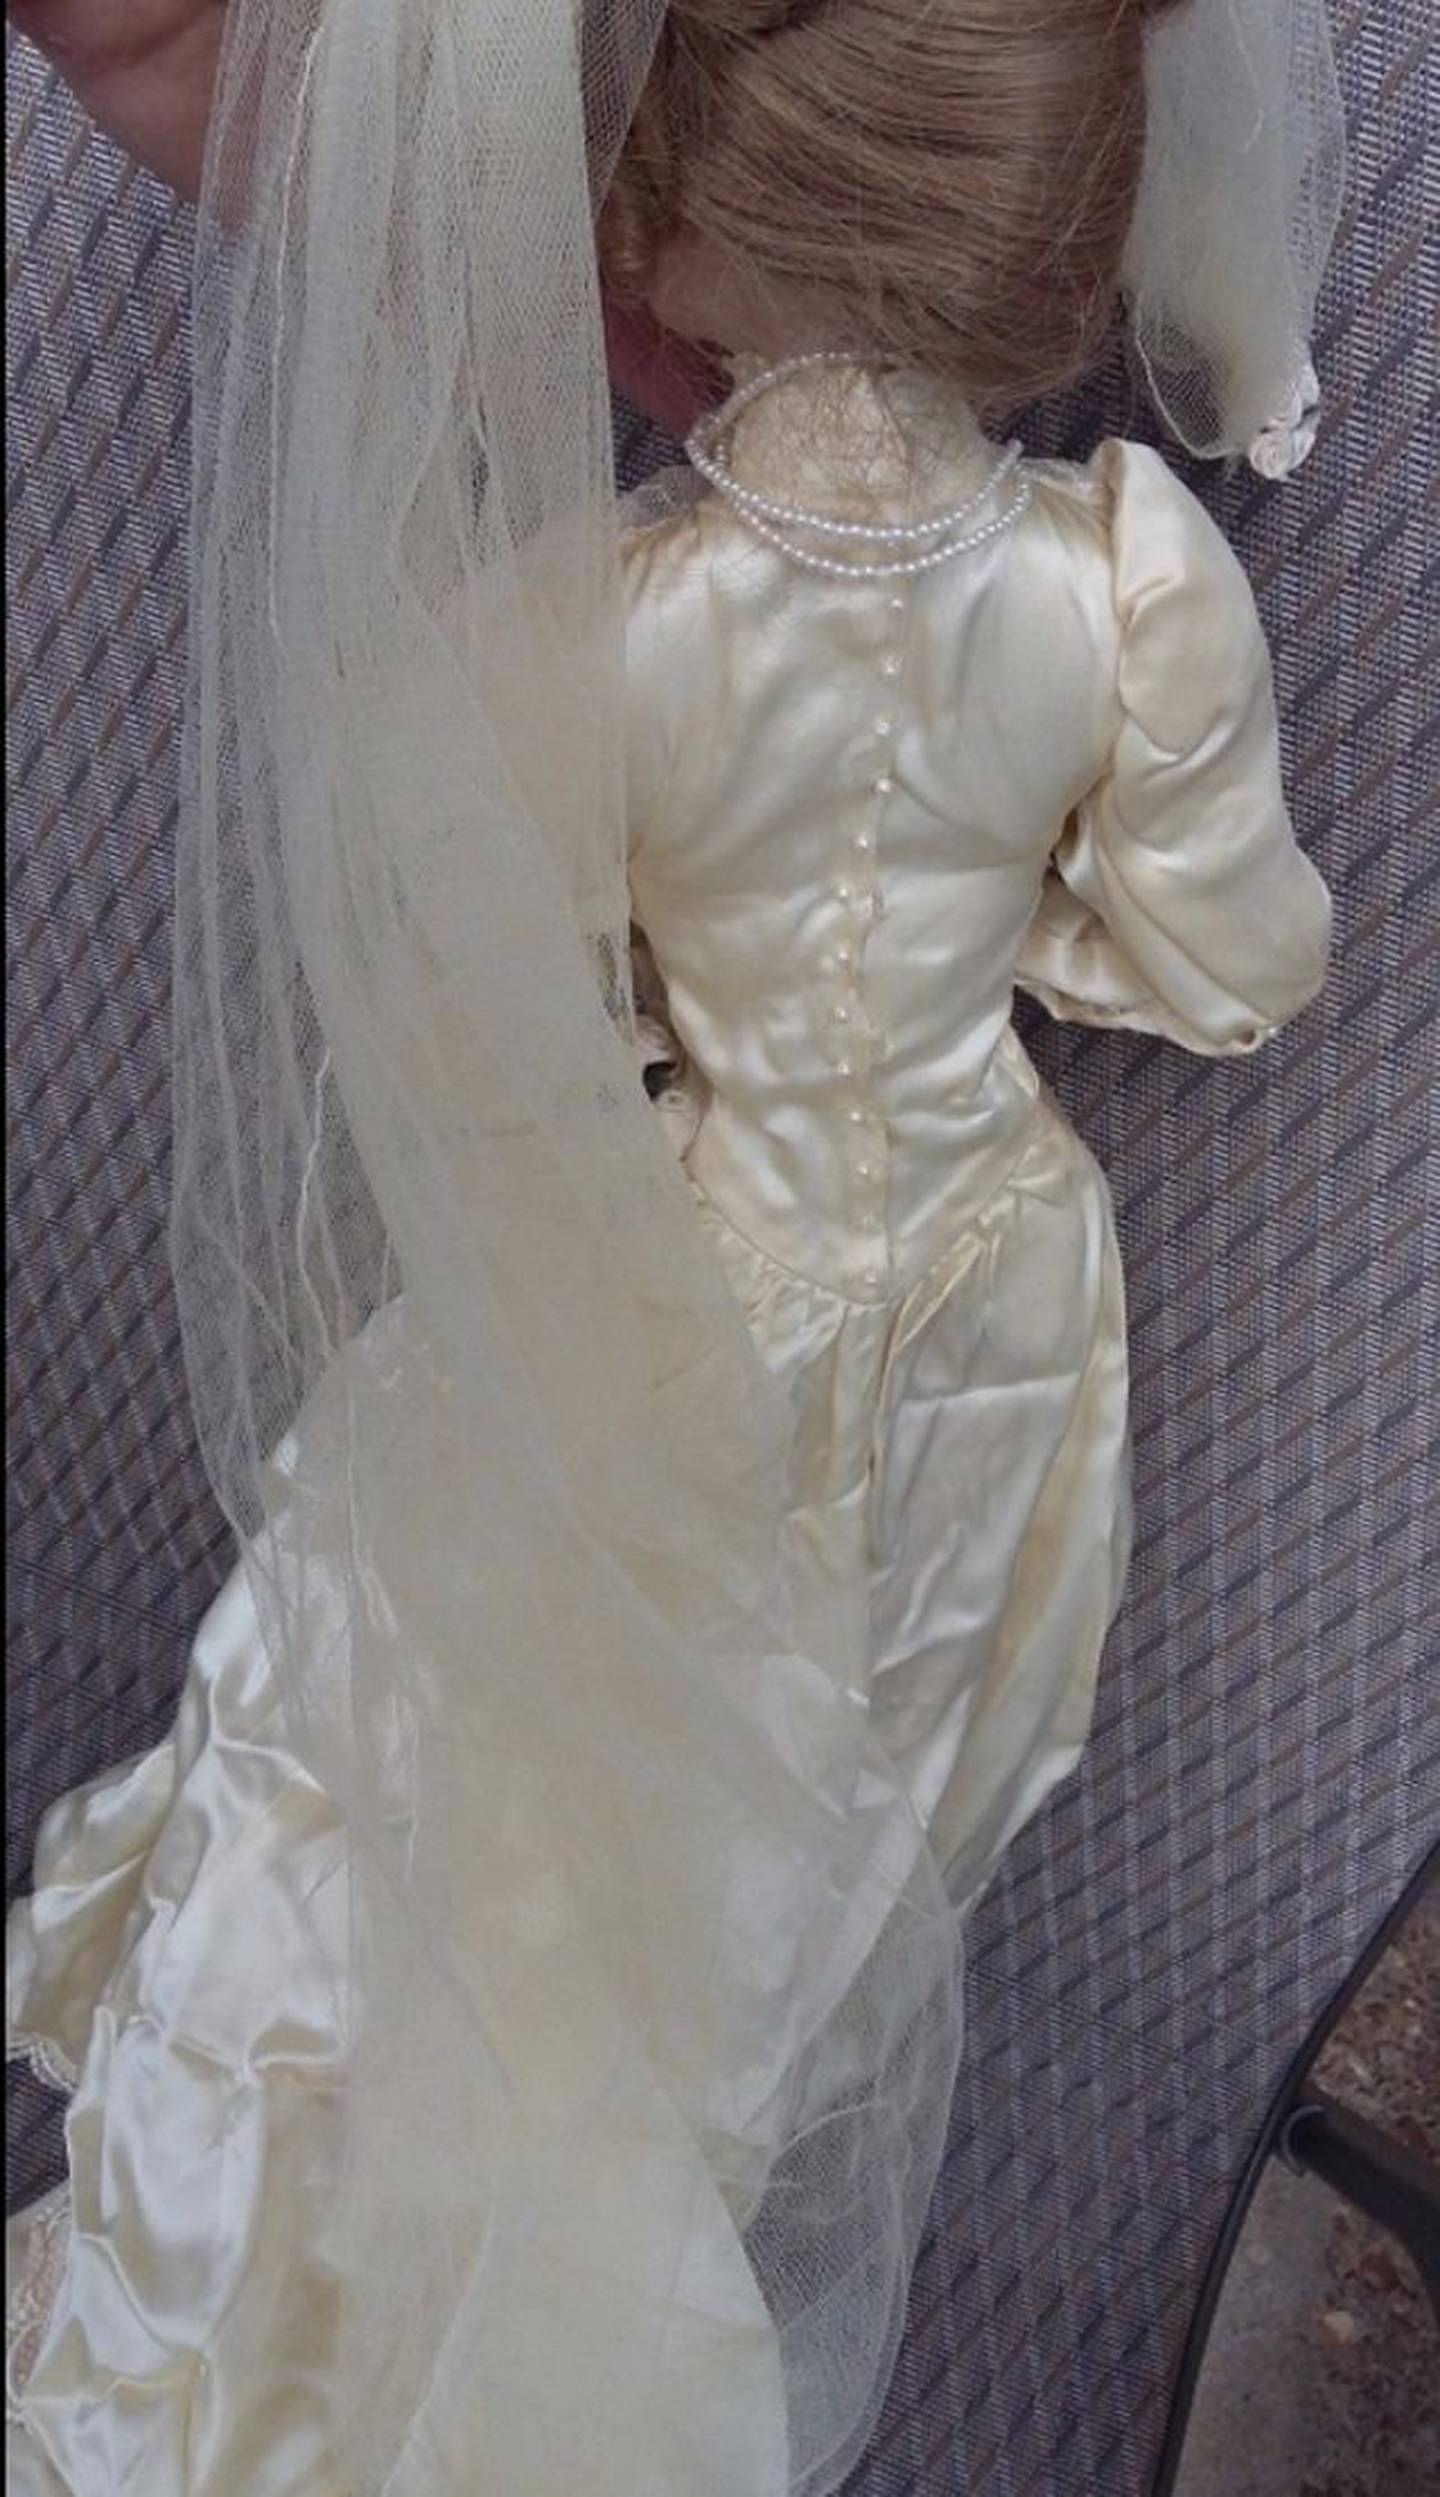 The back of the creepy doll, which Mrs Merrick thinks is haunting her home after her husband got scratch marks.